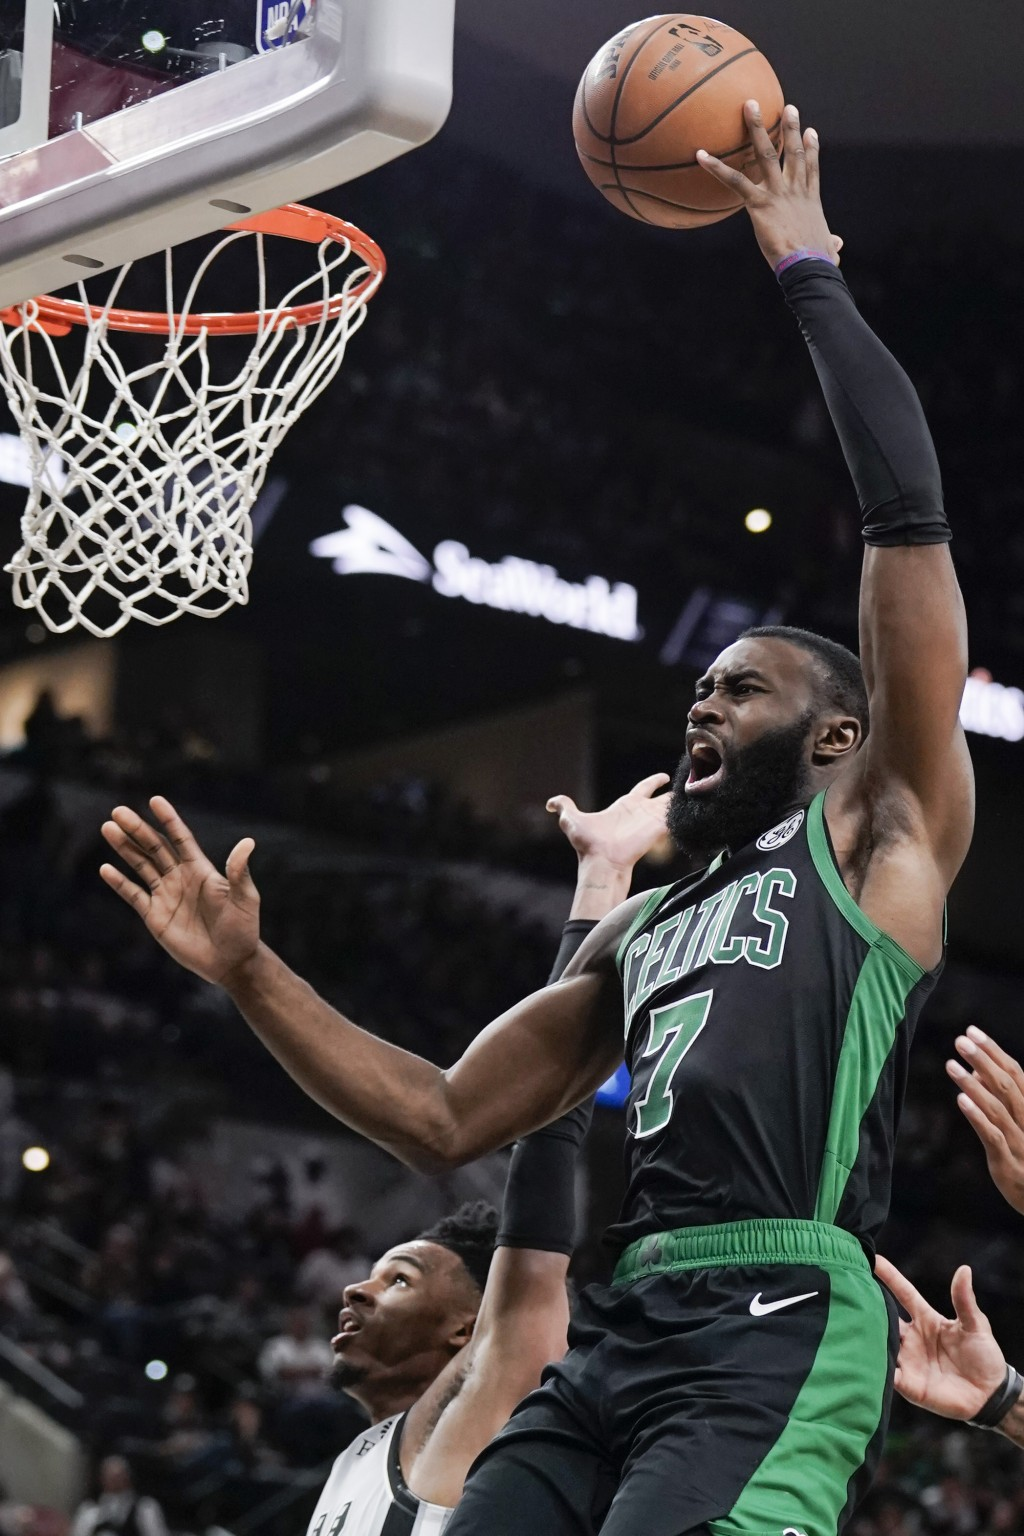 Boston Celtics' Jaylen Brown shoots during the second half of an NBA basketball game against the San Antonio Spurs, Saturday, Nov. 9, 2019, in San Ant...